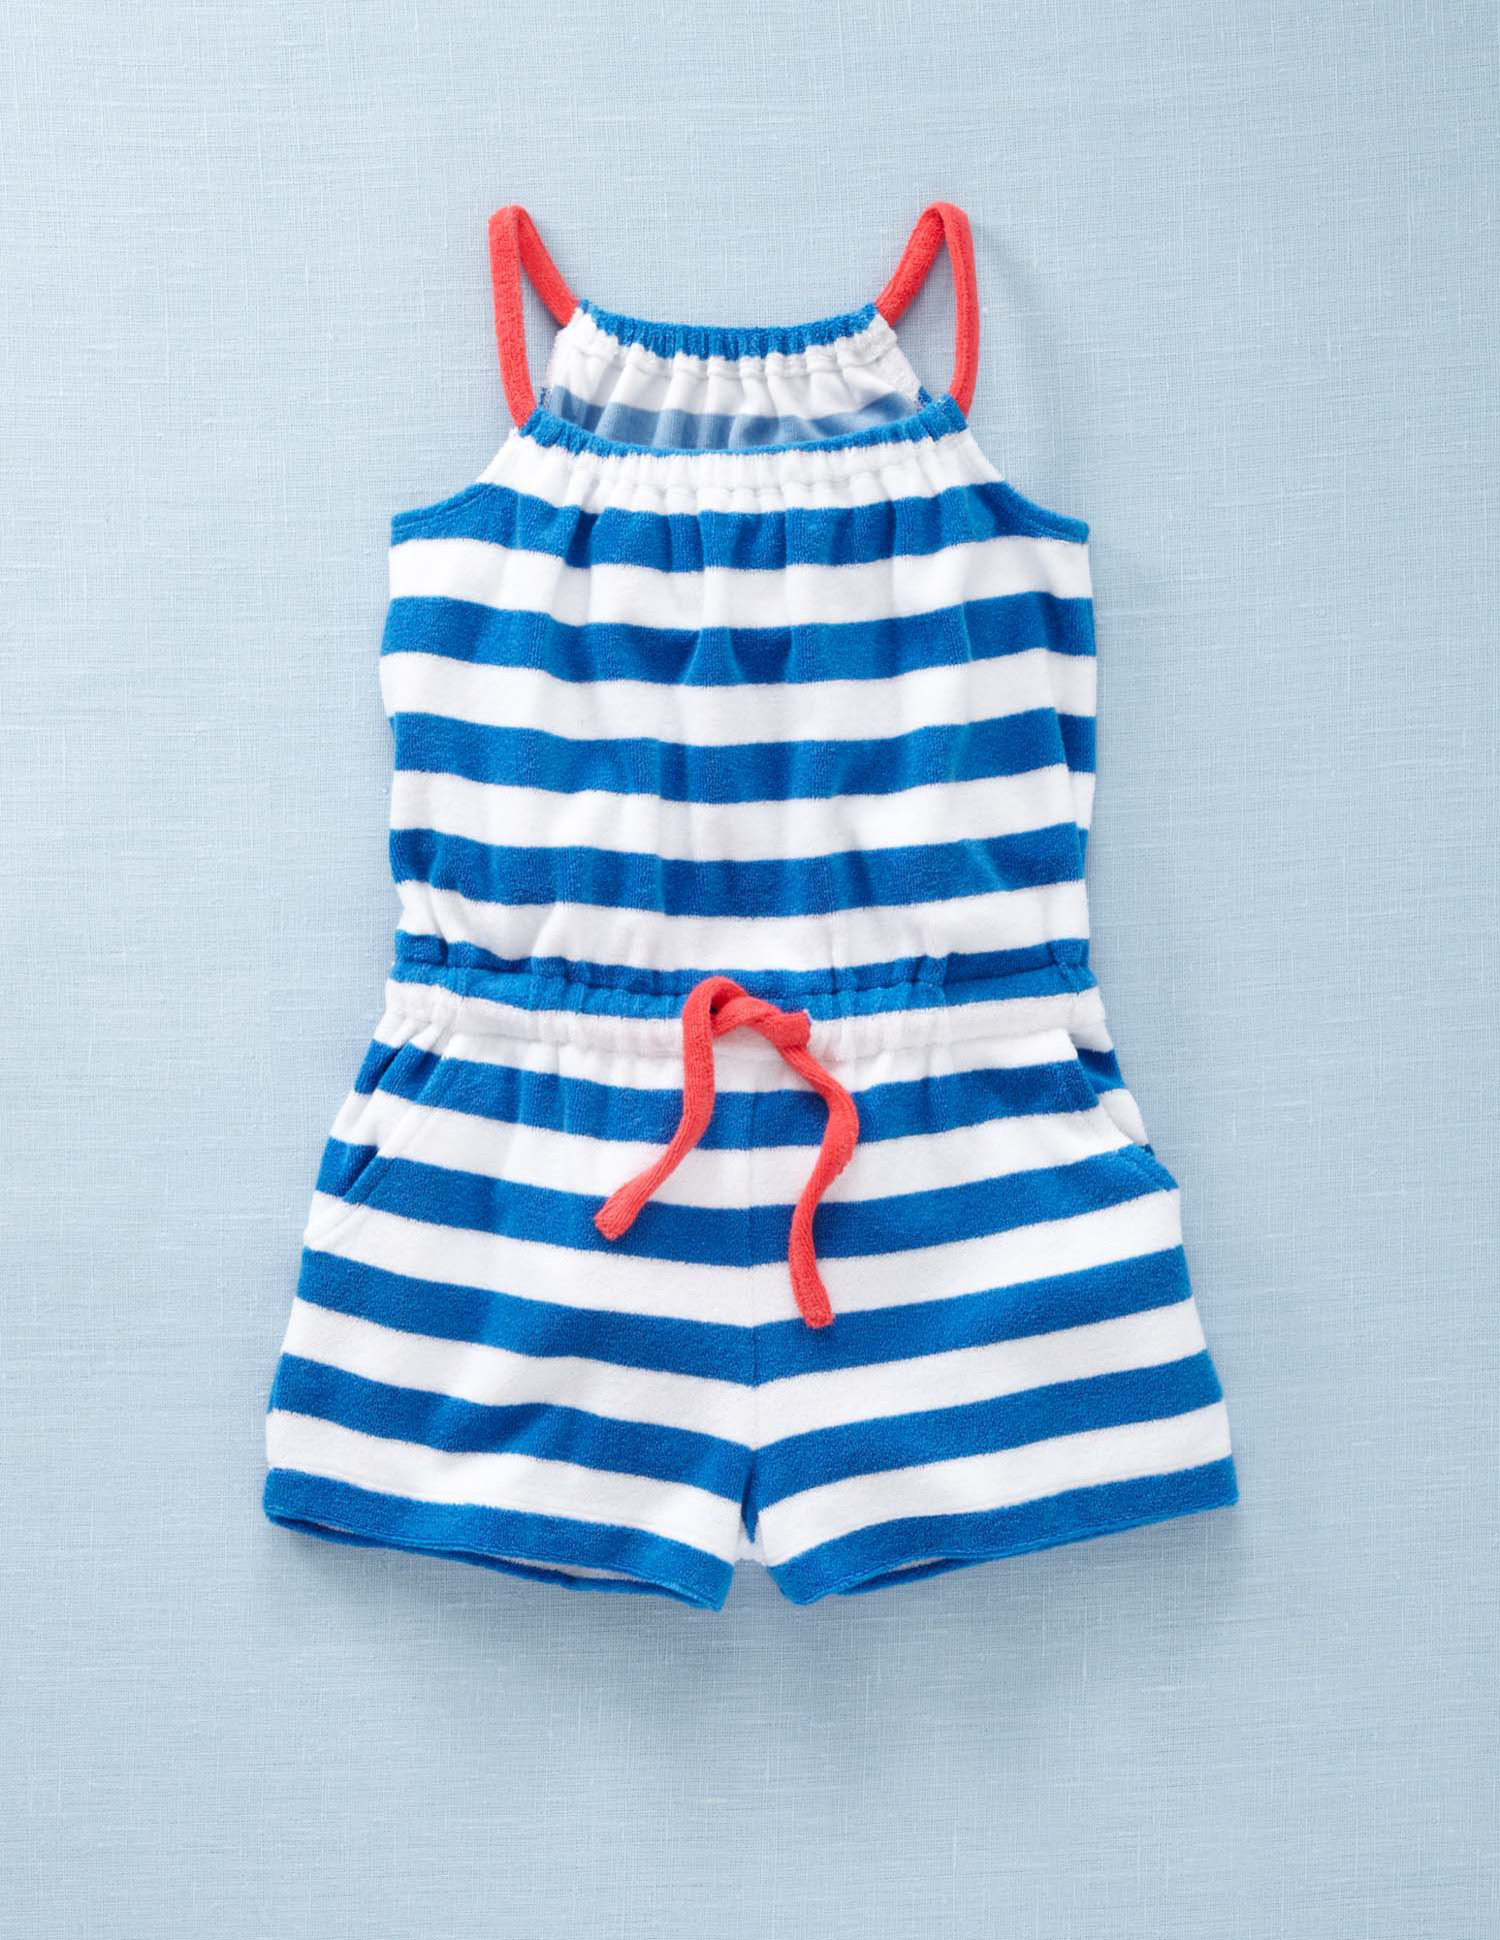 Mini Boden Towelling Playsuit ($38)